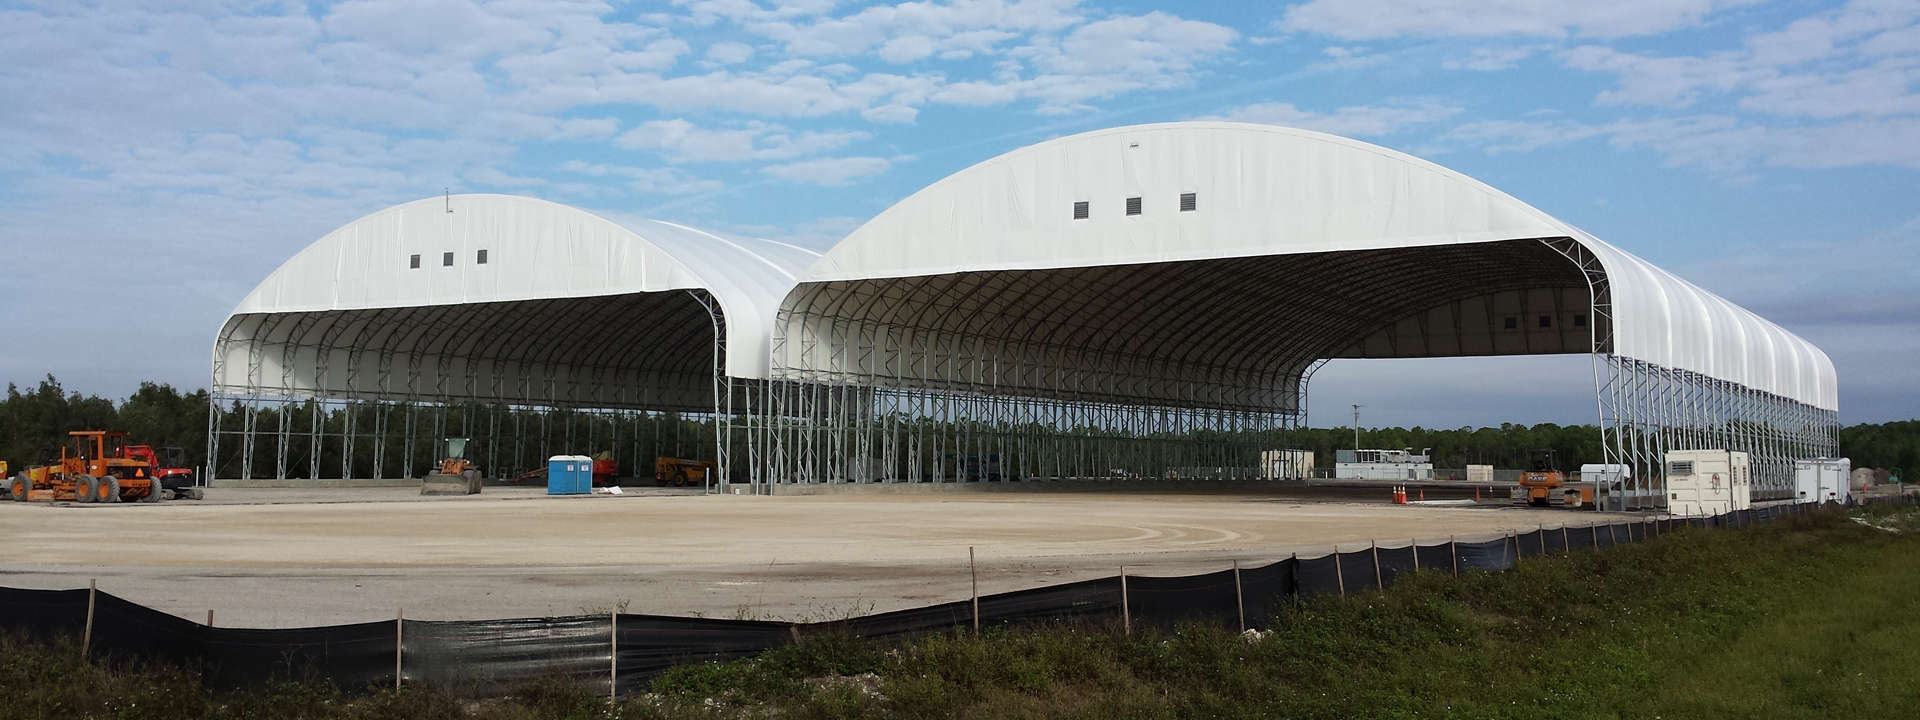 Airplane Hangar | Military